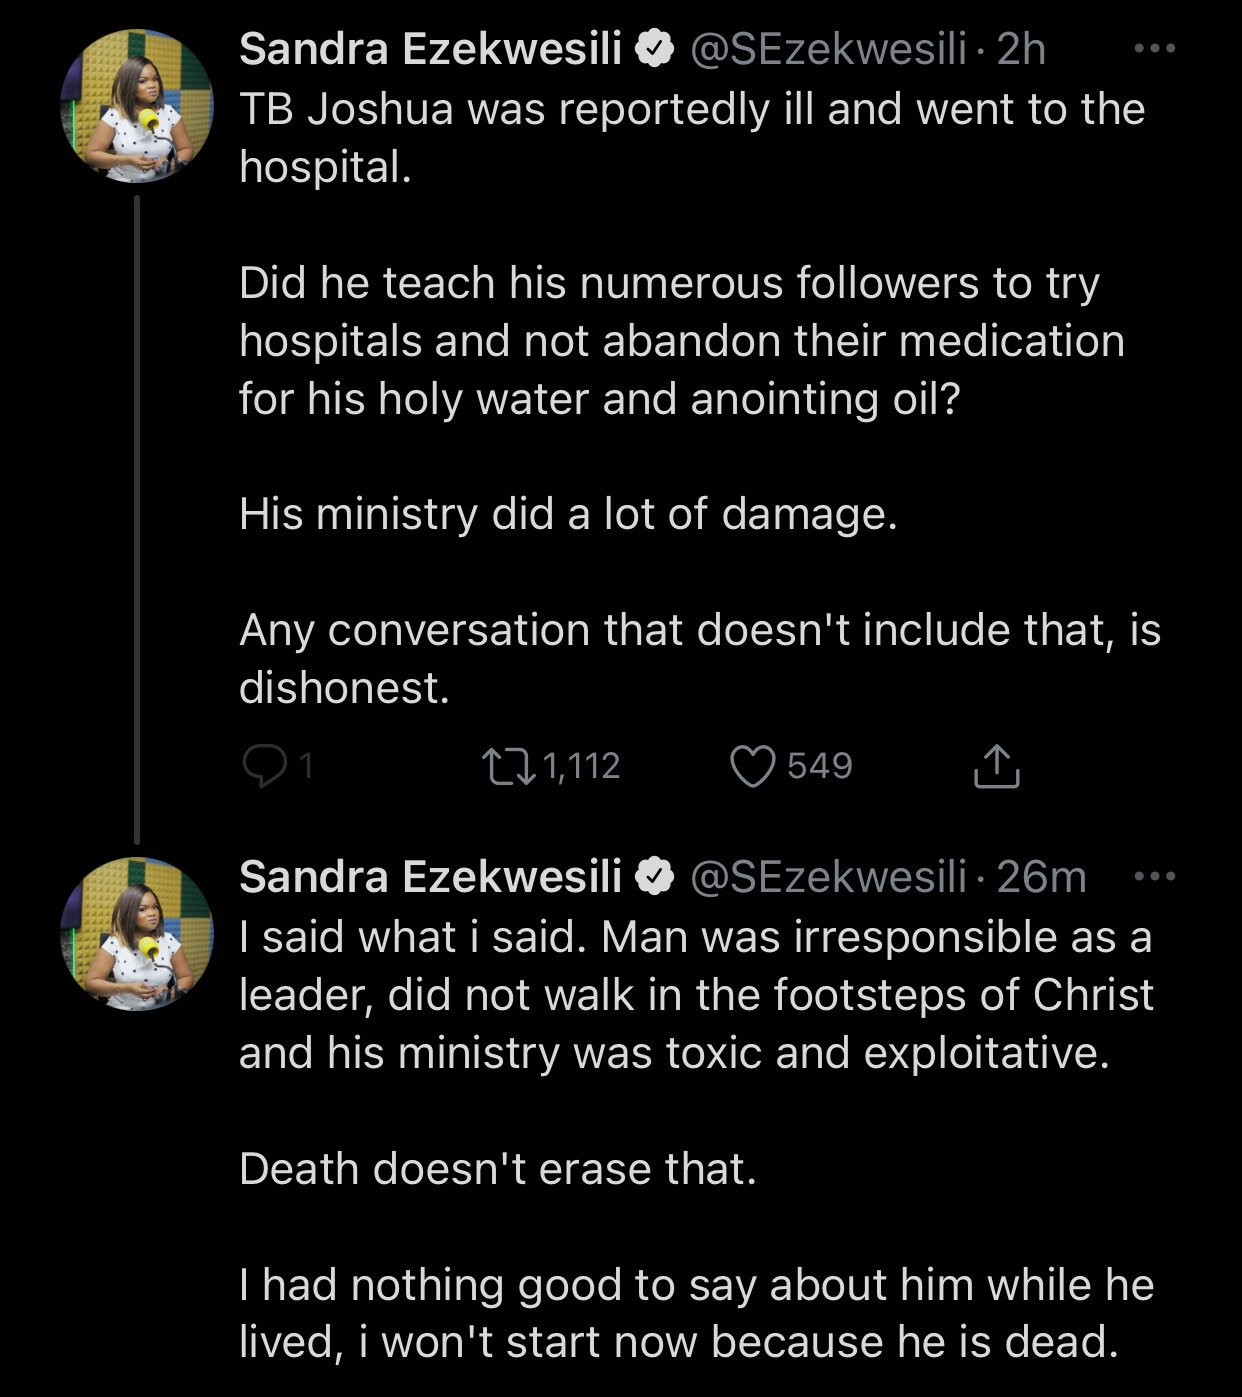 'TB Joshua didn't walk in footsteps of Christ, his ministry was toxic'